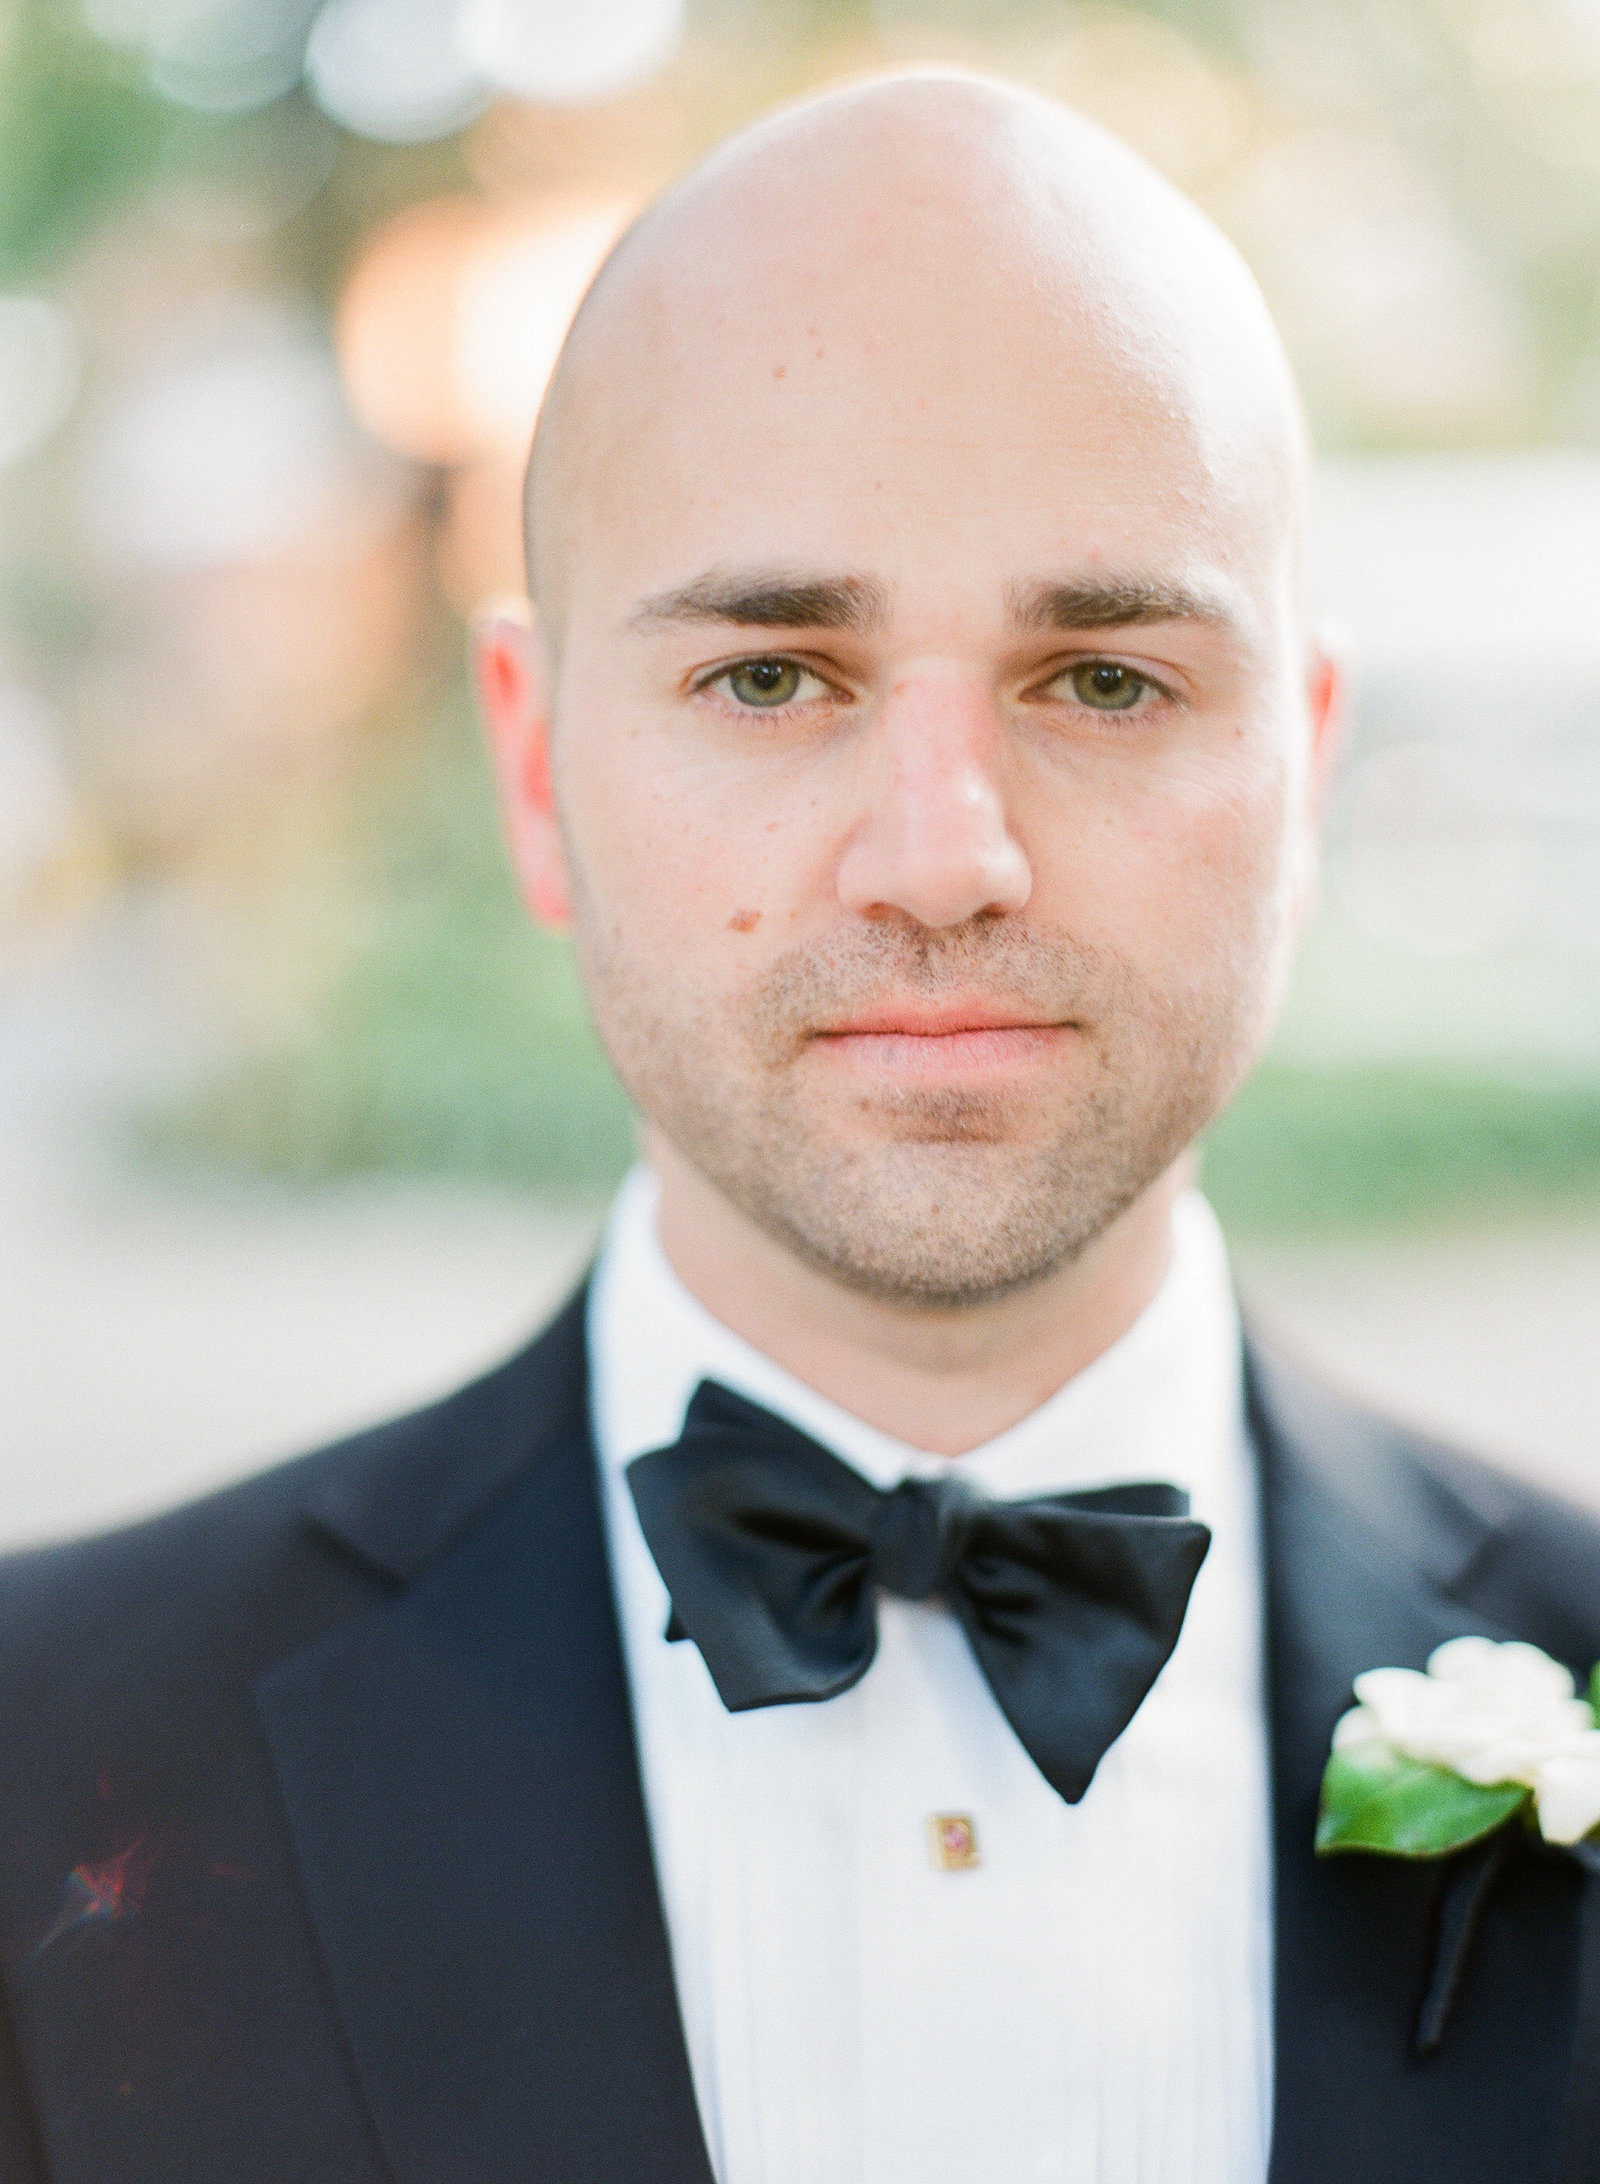 groom in black tuxedo with classic white boutonniere